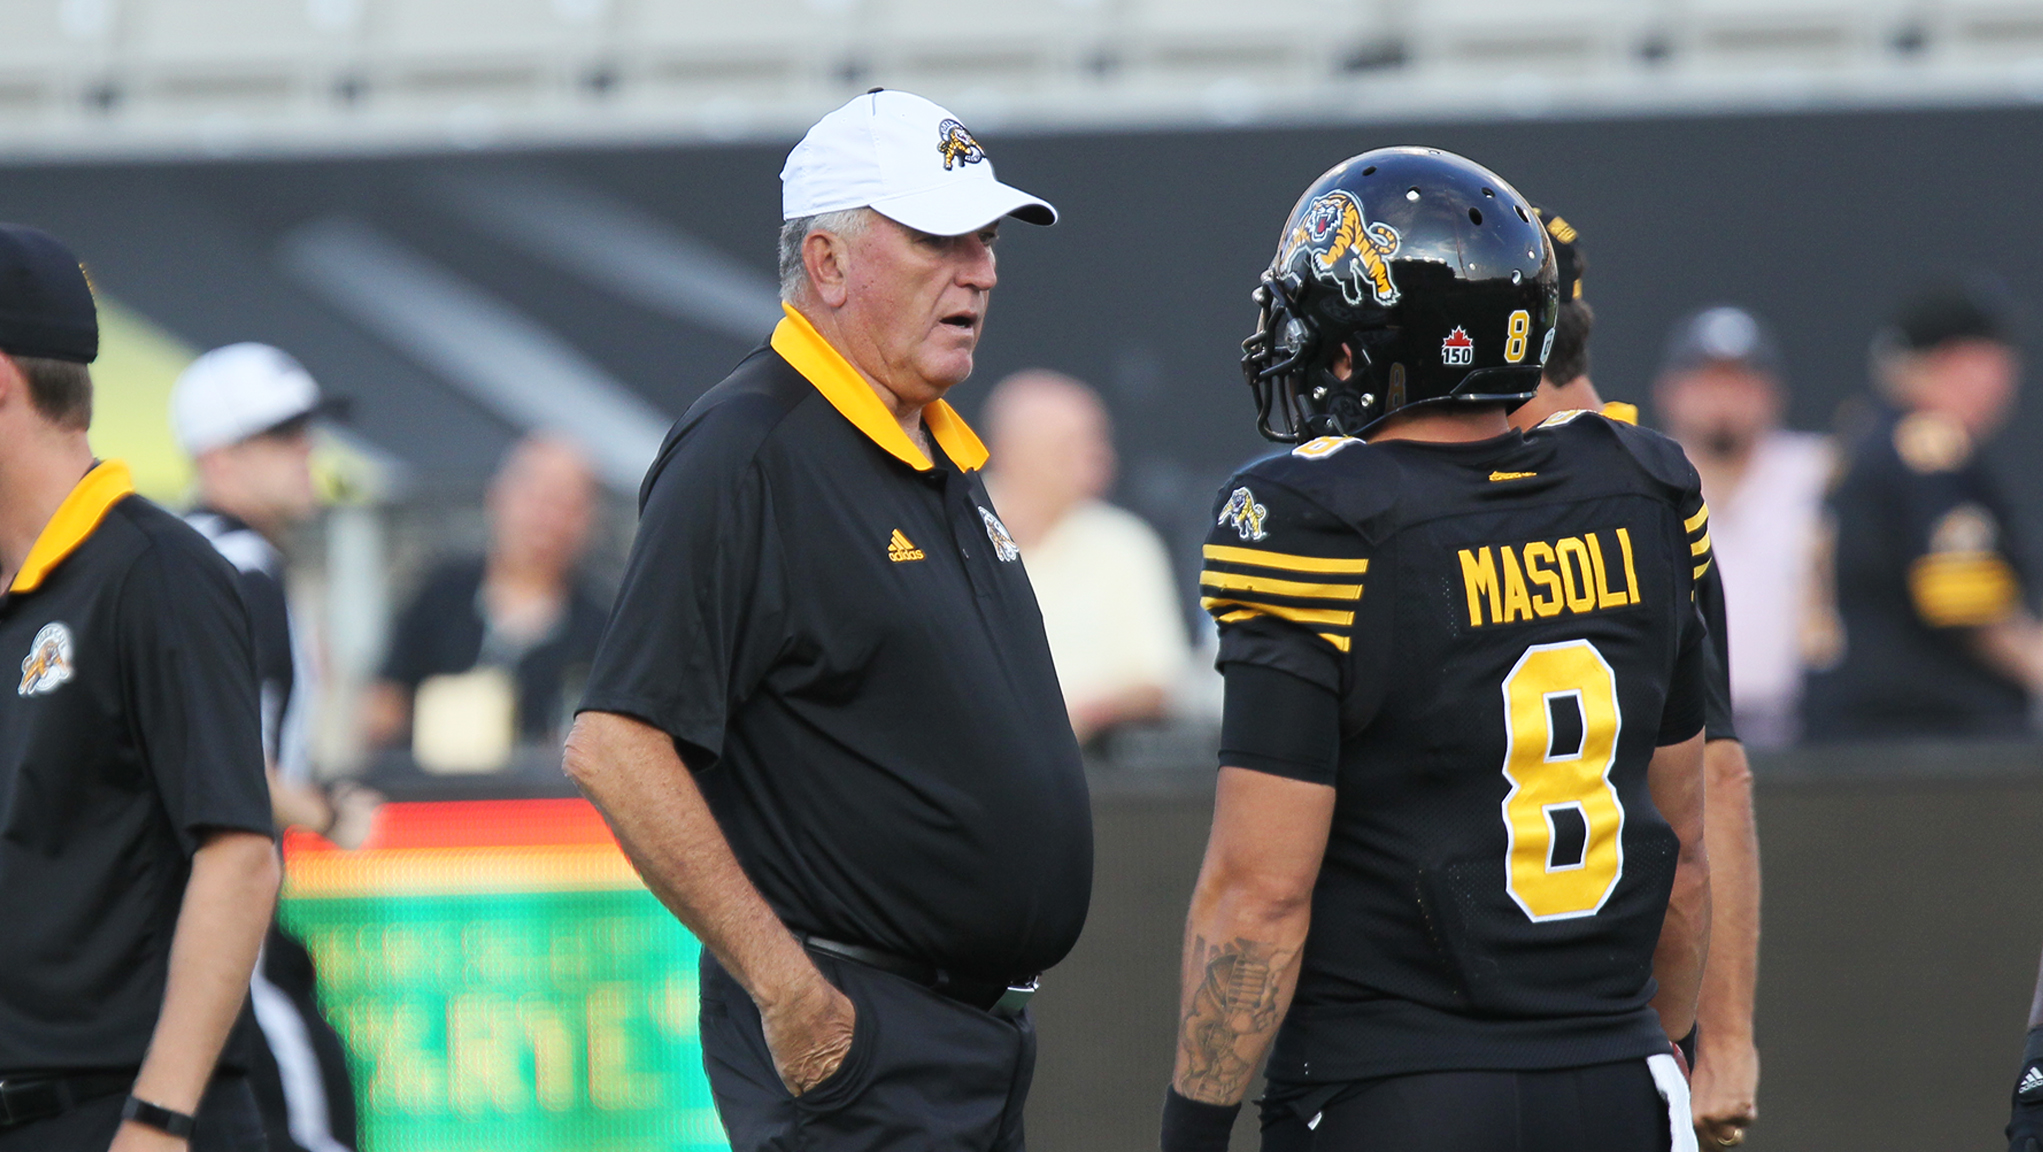 Former UH Football Coach June Jones Named Head Coach of Hamilton Tiger-Cats